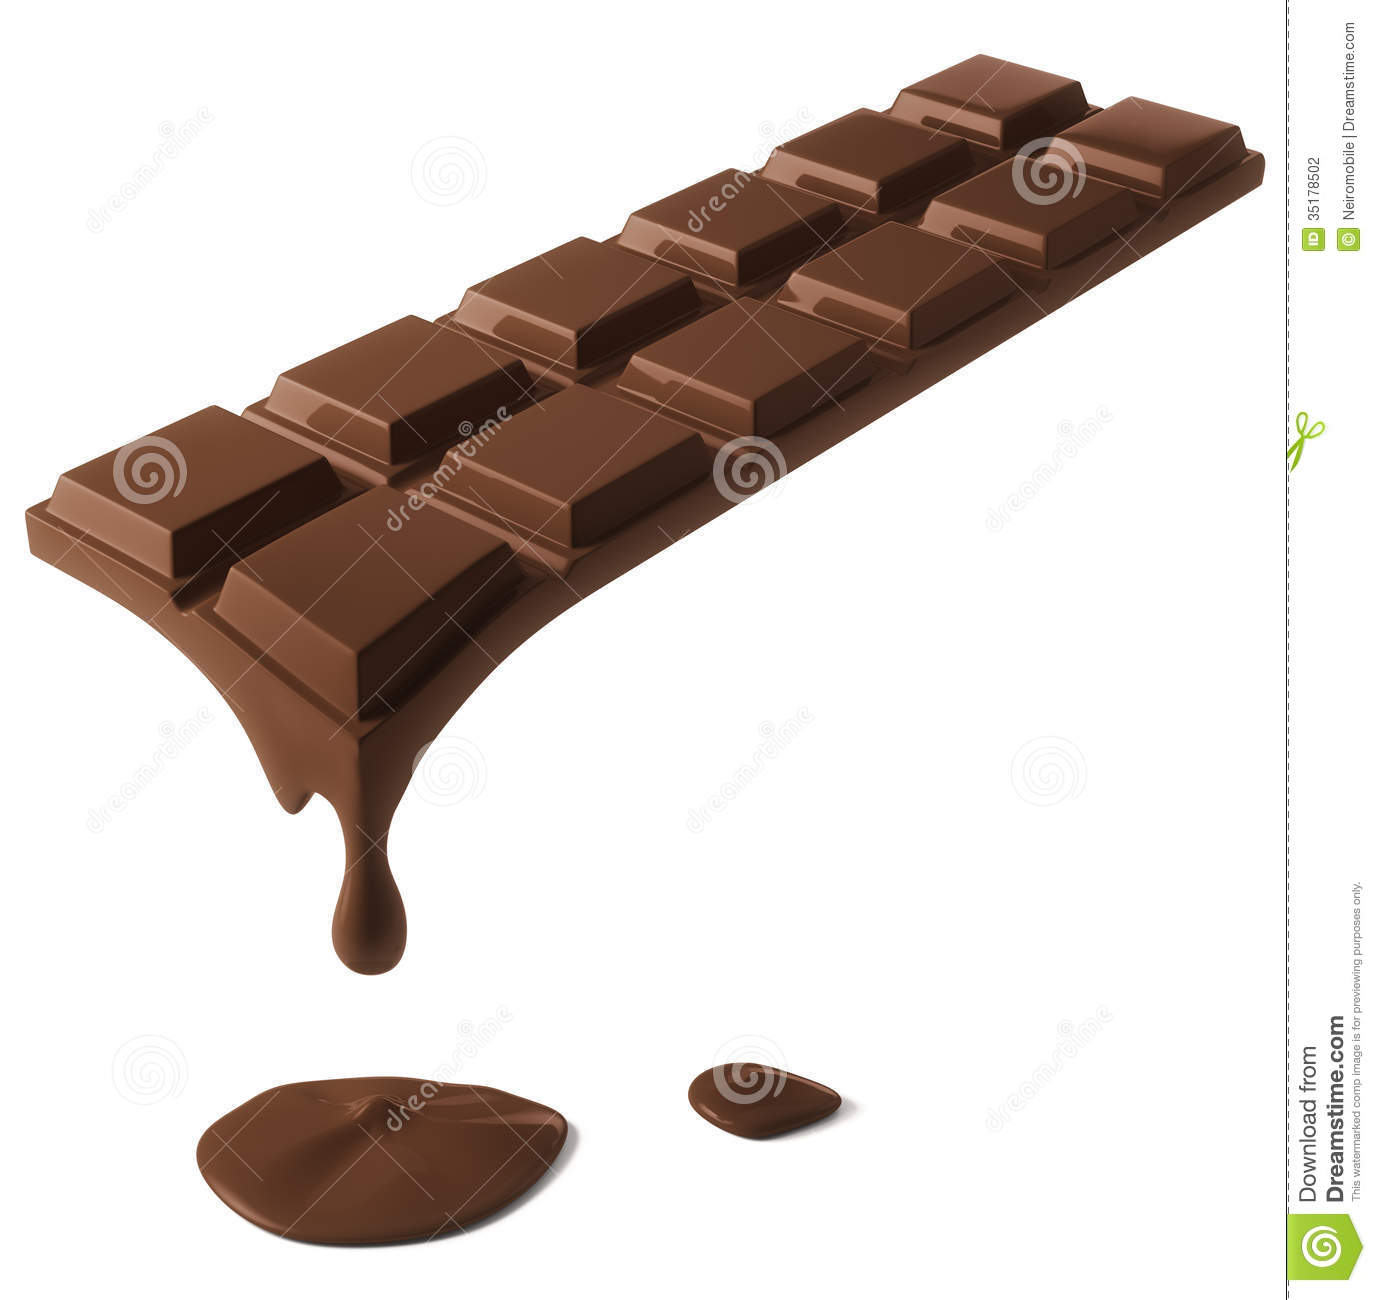 Melting Chocolate Bar Stock Photos, Images, & Pictures - 912 Images